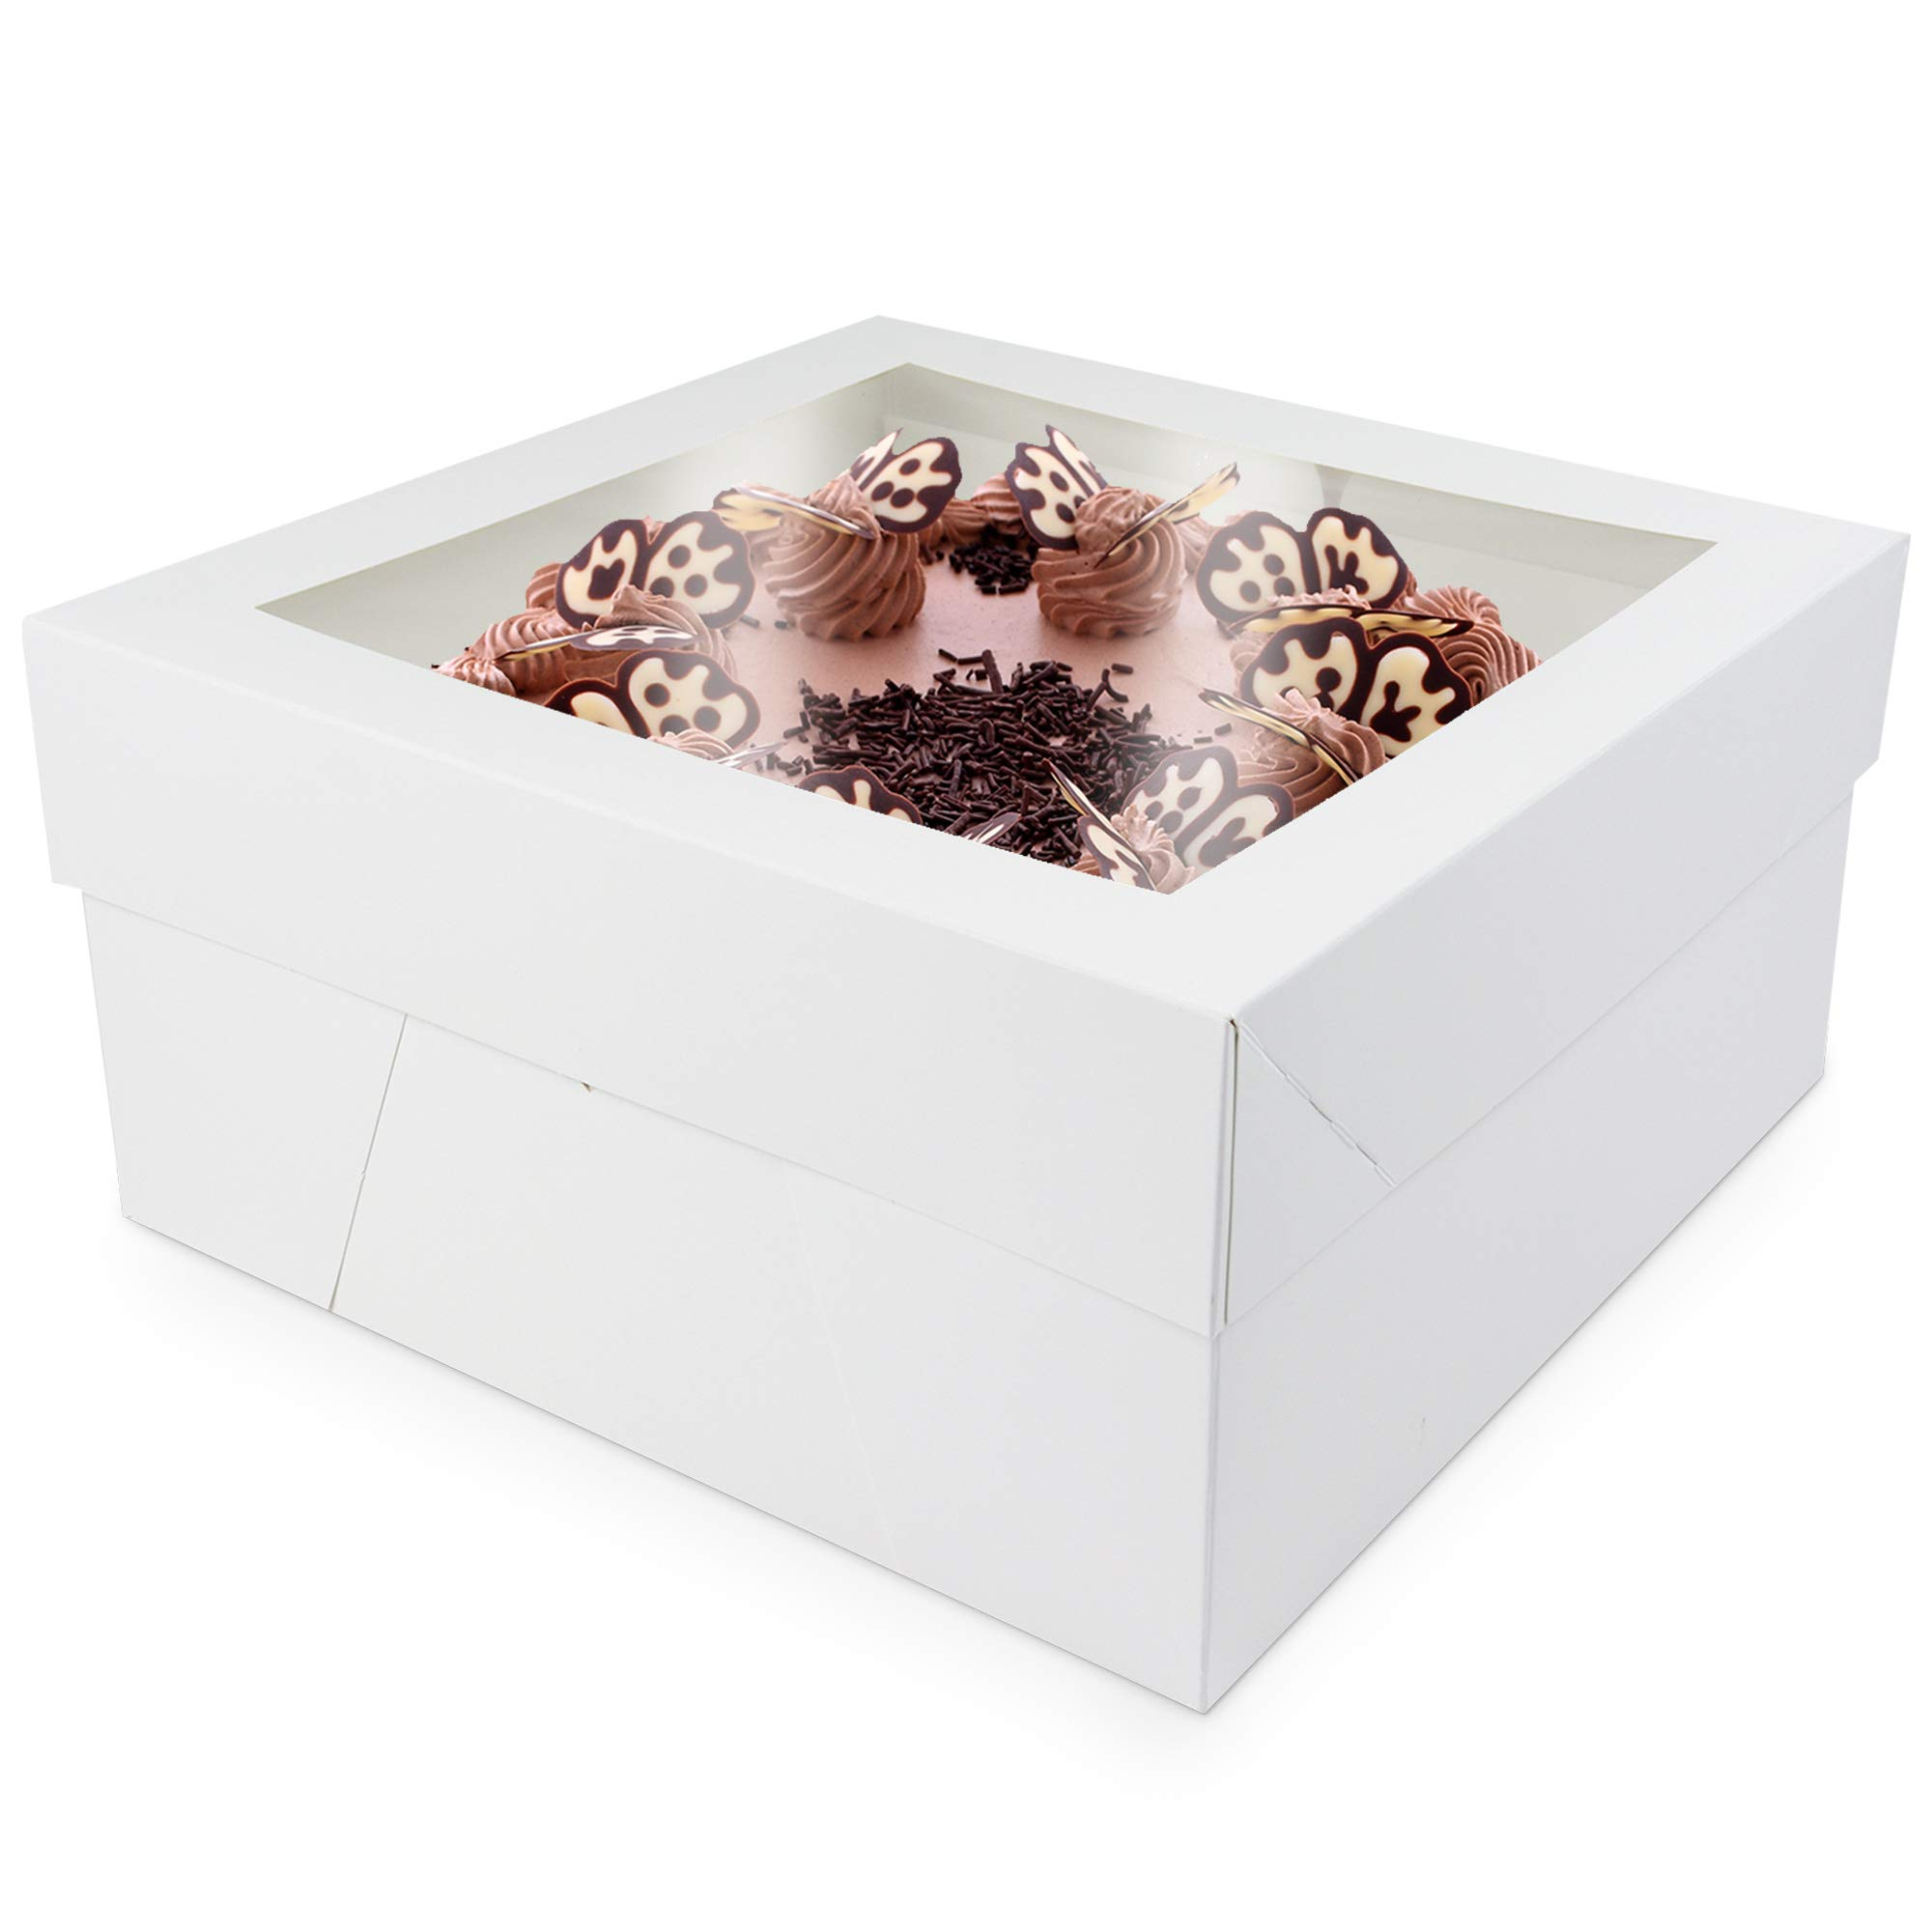 O'Creme Cake Boxes - White Bakery Boxes with Window - 12'' x 12'' x 6'' Inch - Kraft Paperboard Bakery Boxes for Holding and Displaying your Pastries, 25 Pack